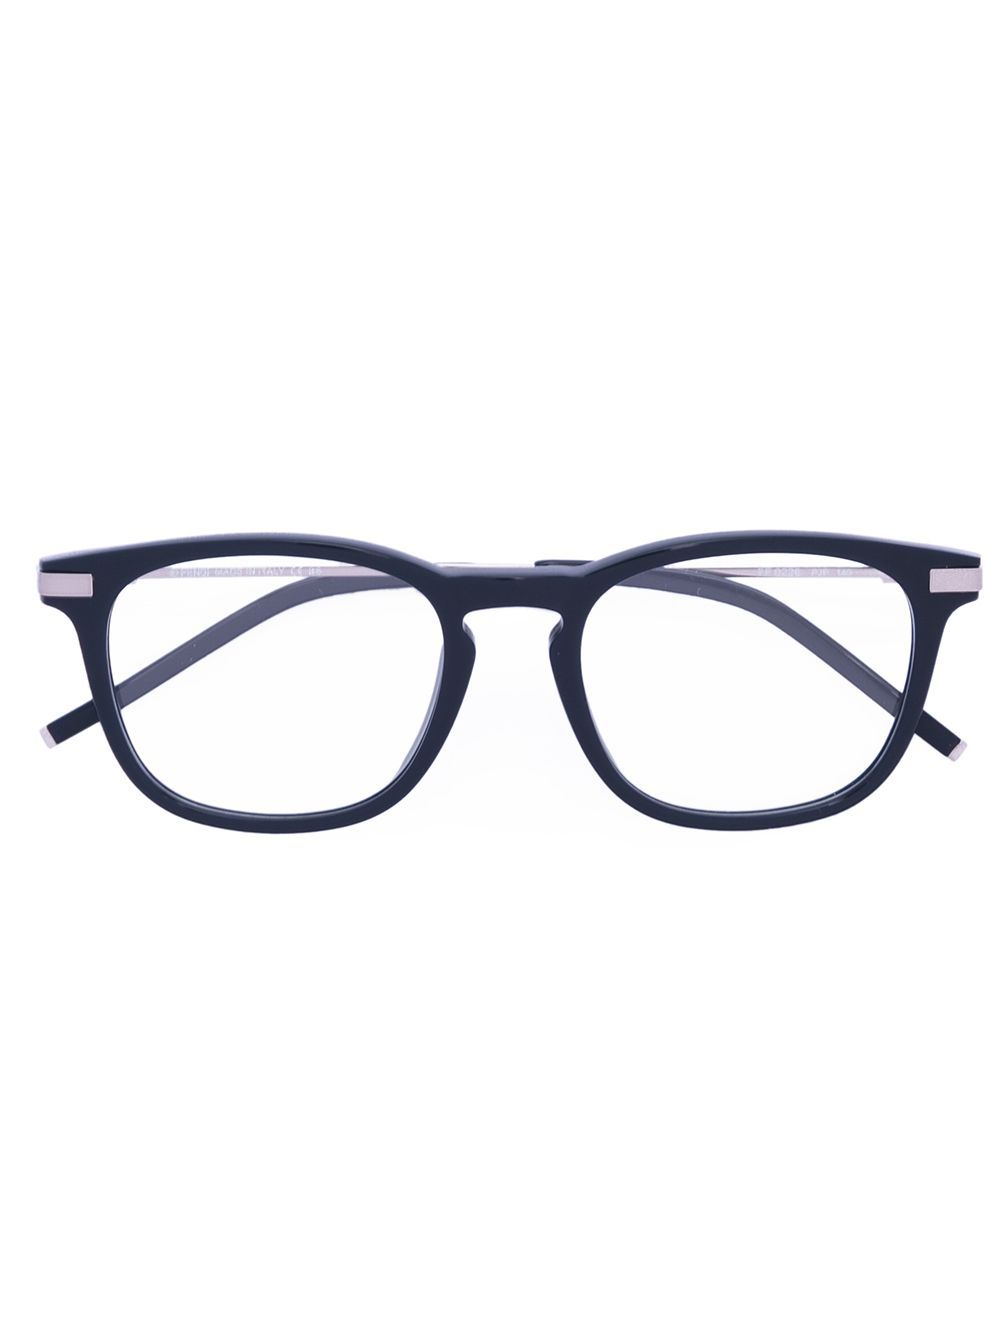 The collection from Fendi features playfully striking detailing - elaborating the elegantly decadent spirit of the brand. These blue acetate and metal Urban glasses are a classic piece from the collection and feature a logo at the temple and straight arms with curved tips. This item is unisex. This item comes with a protective case. These glasses can be adapted to fit all types of prescription lenses.